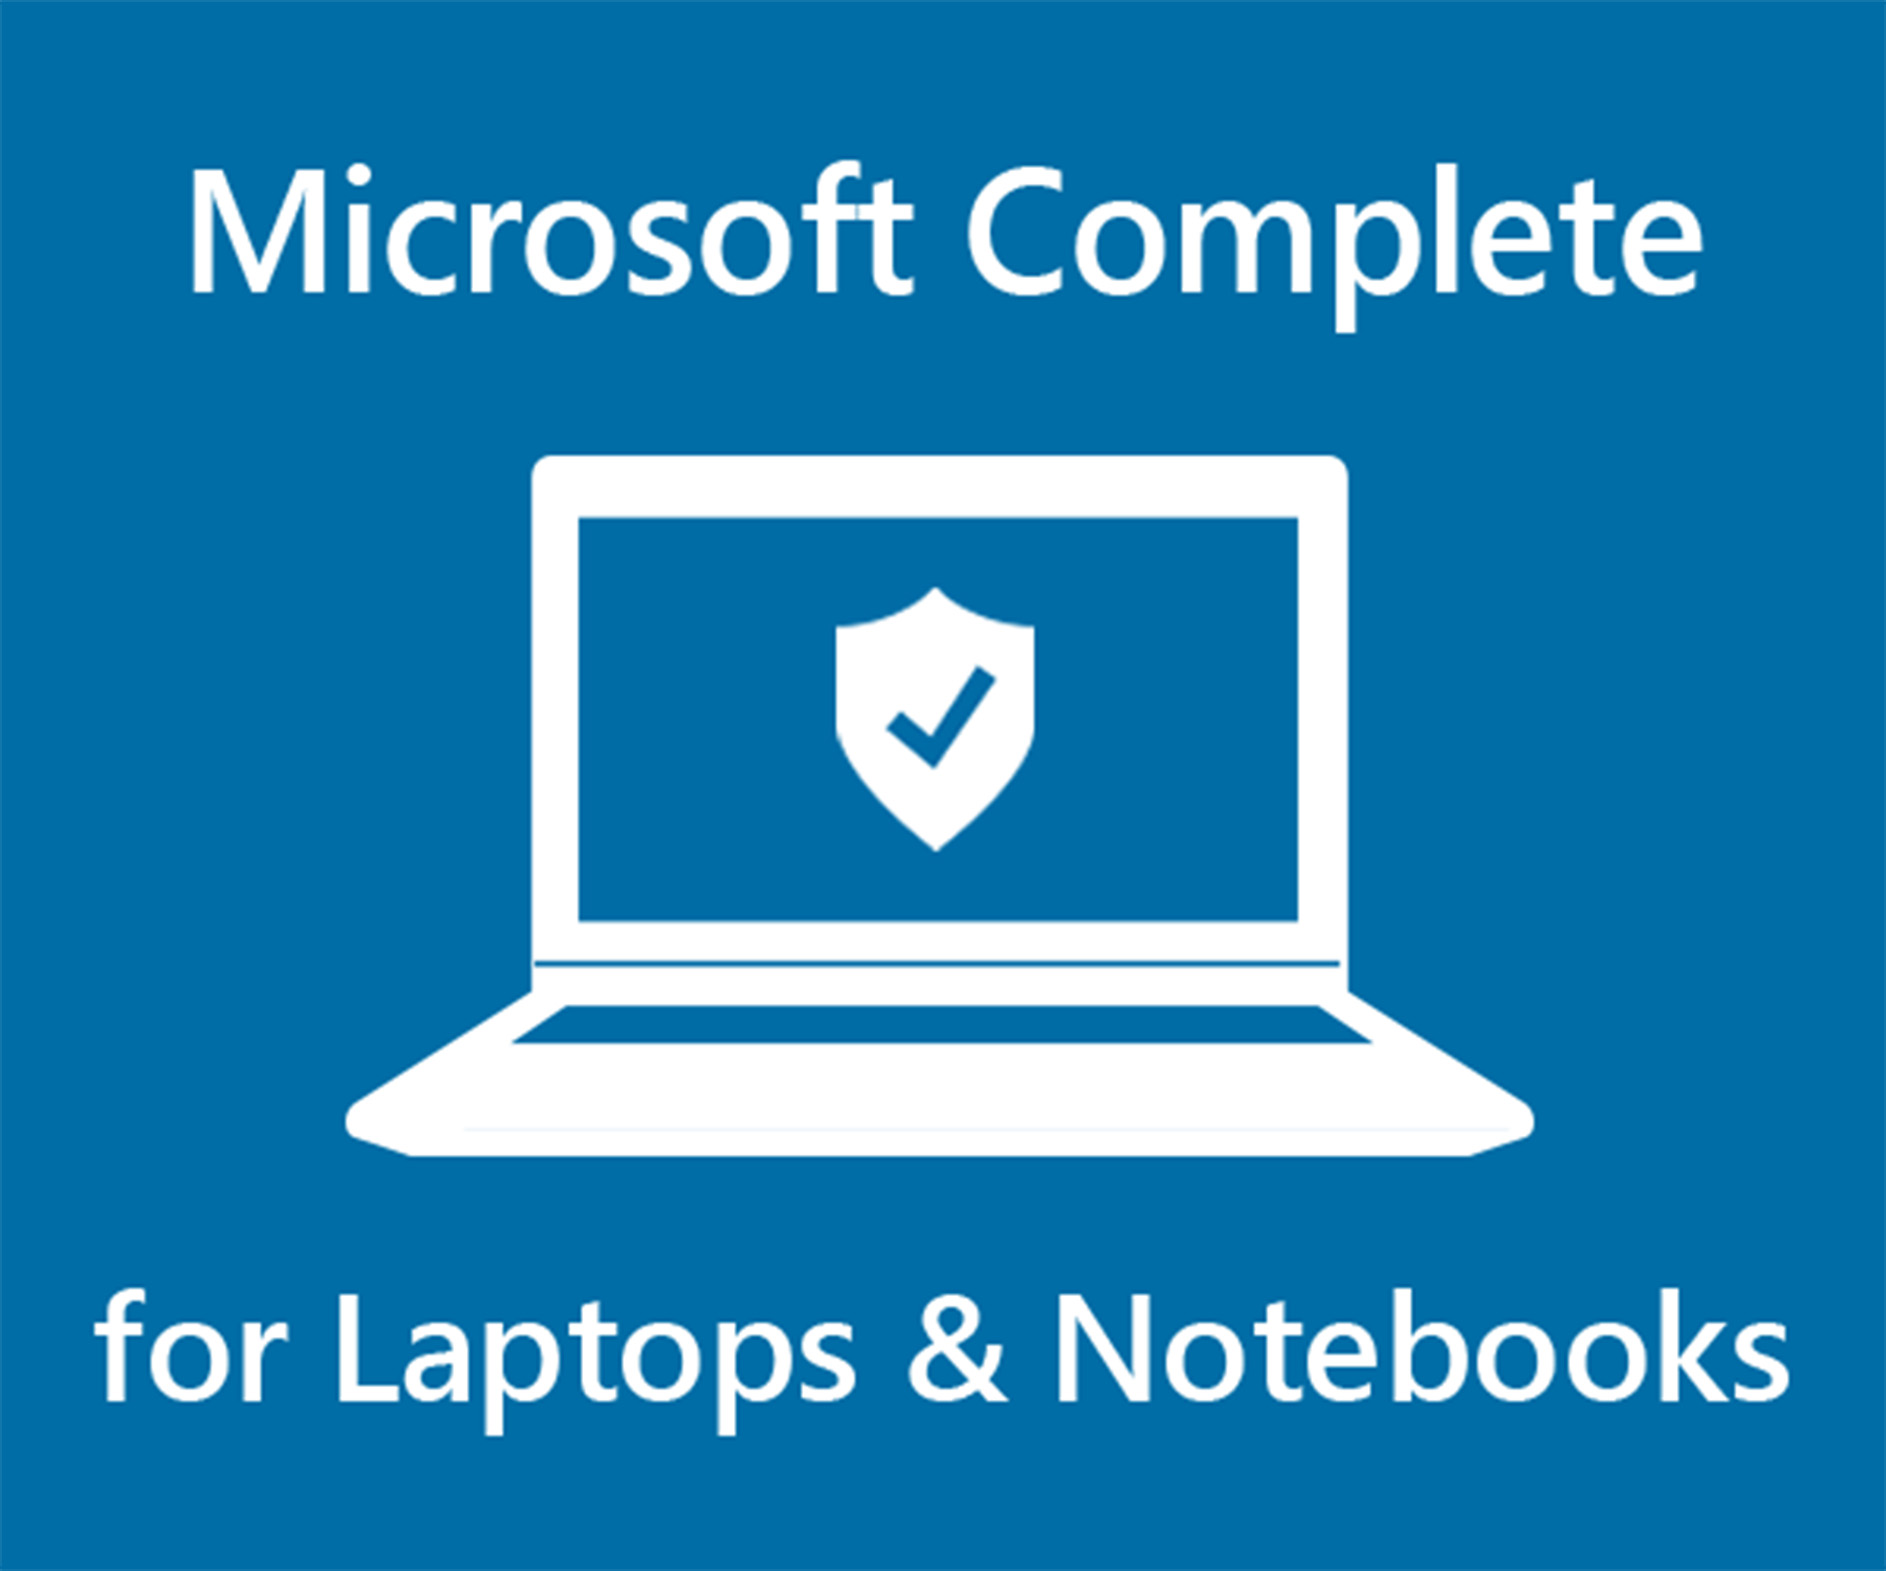 Microsoft Complete for Laptops